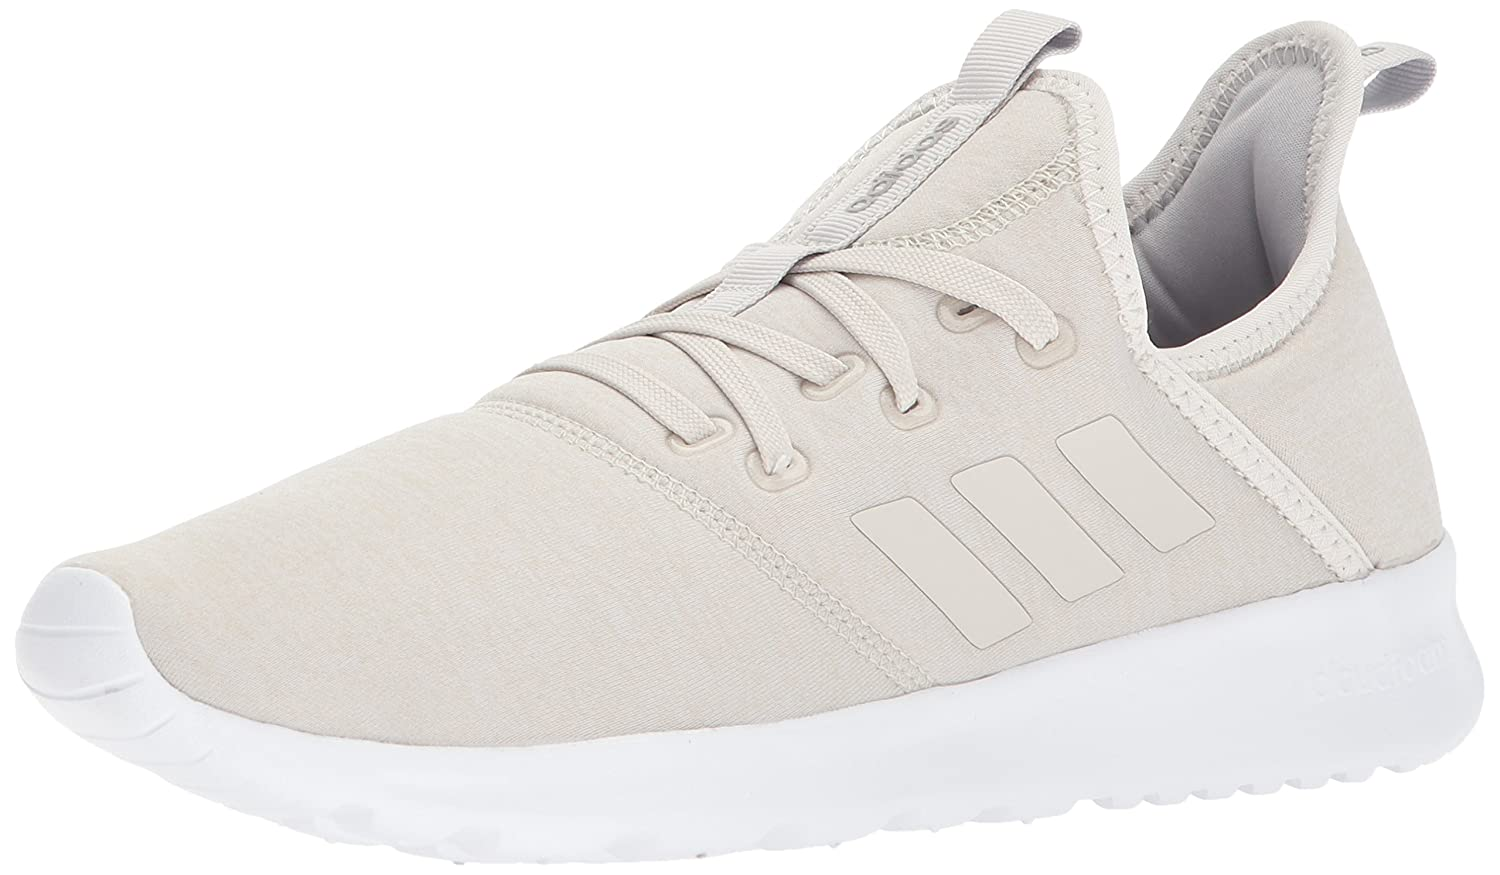 adidas Women's Cloudfoam Pure Running Shoe B0711R2F6G 6.5 B(M) US|Crystal White/Crystal White/Talc